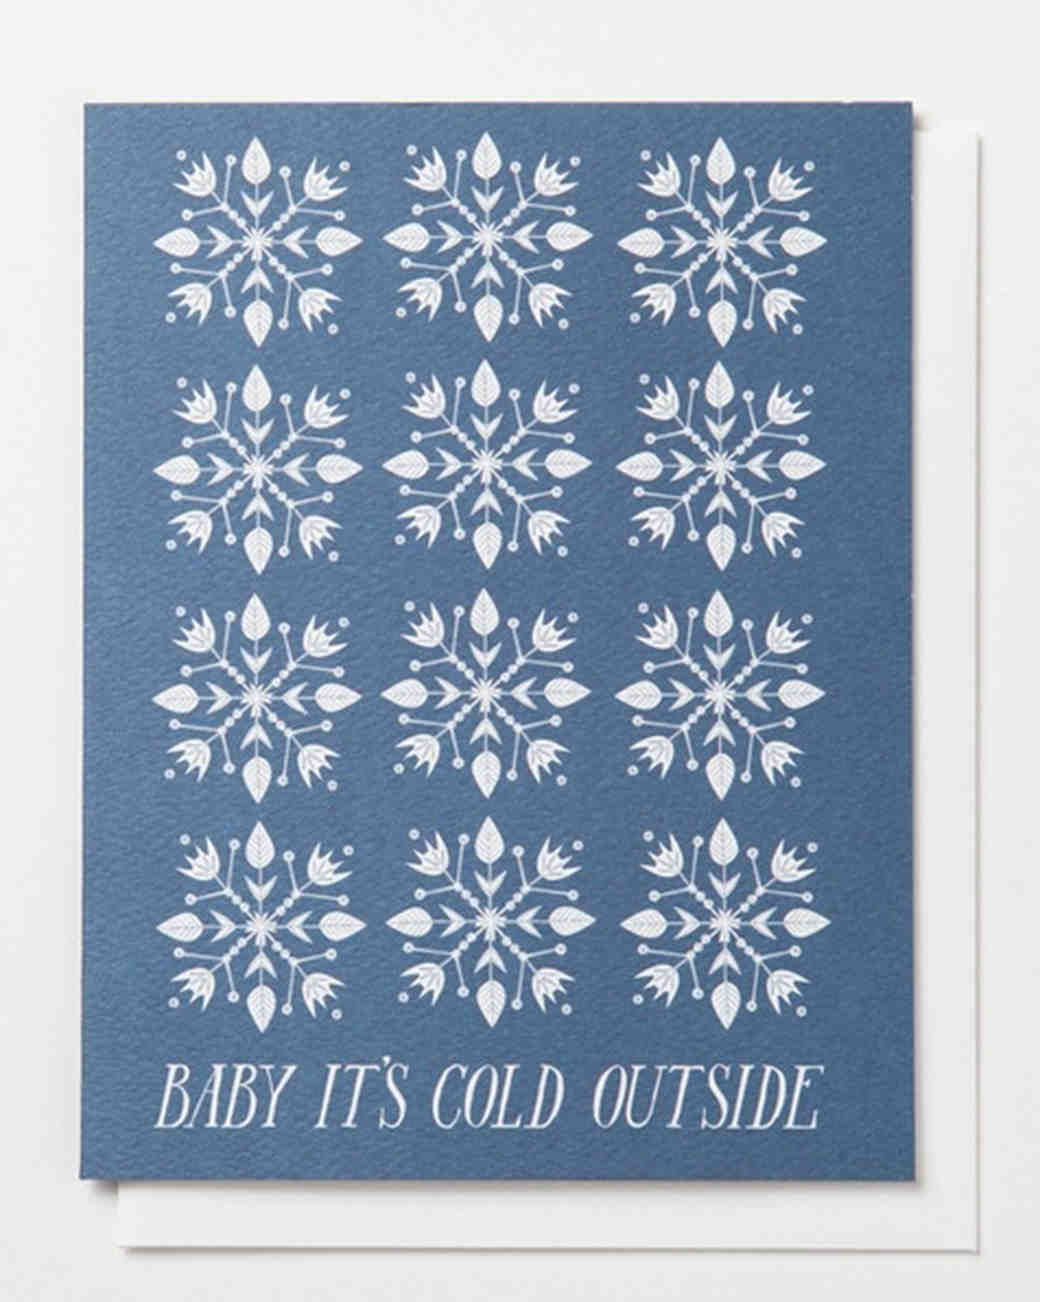 holiday-card-banquet-ateliers-baby-its-cold-outside-1215.jpg